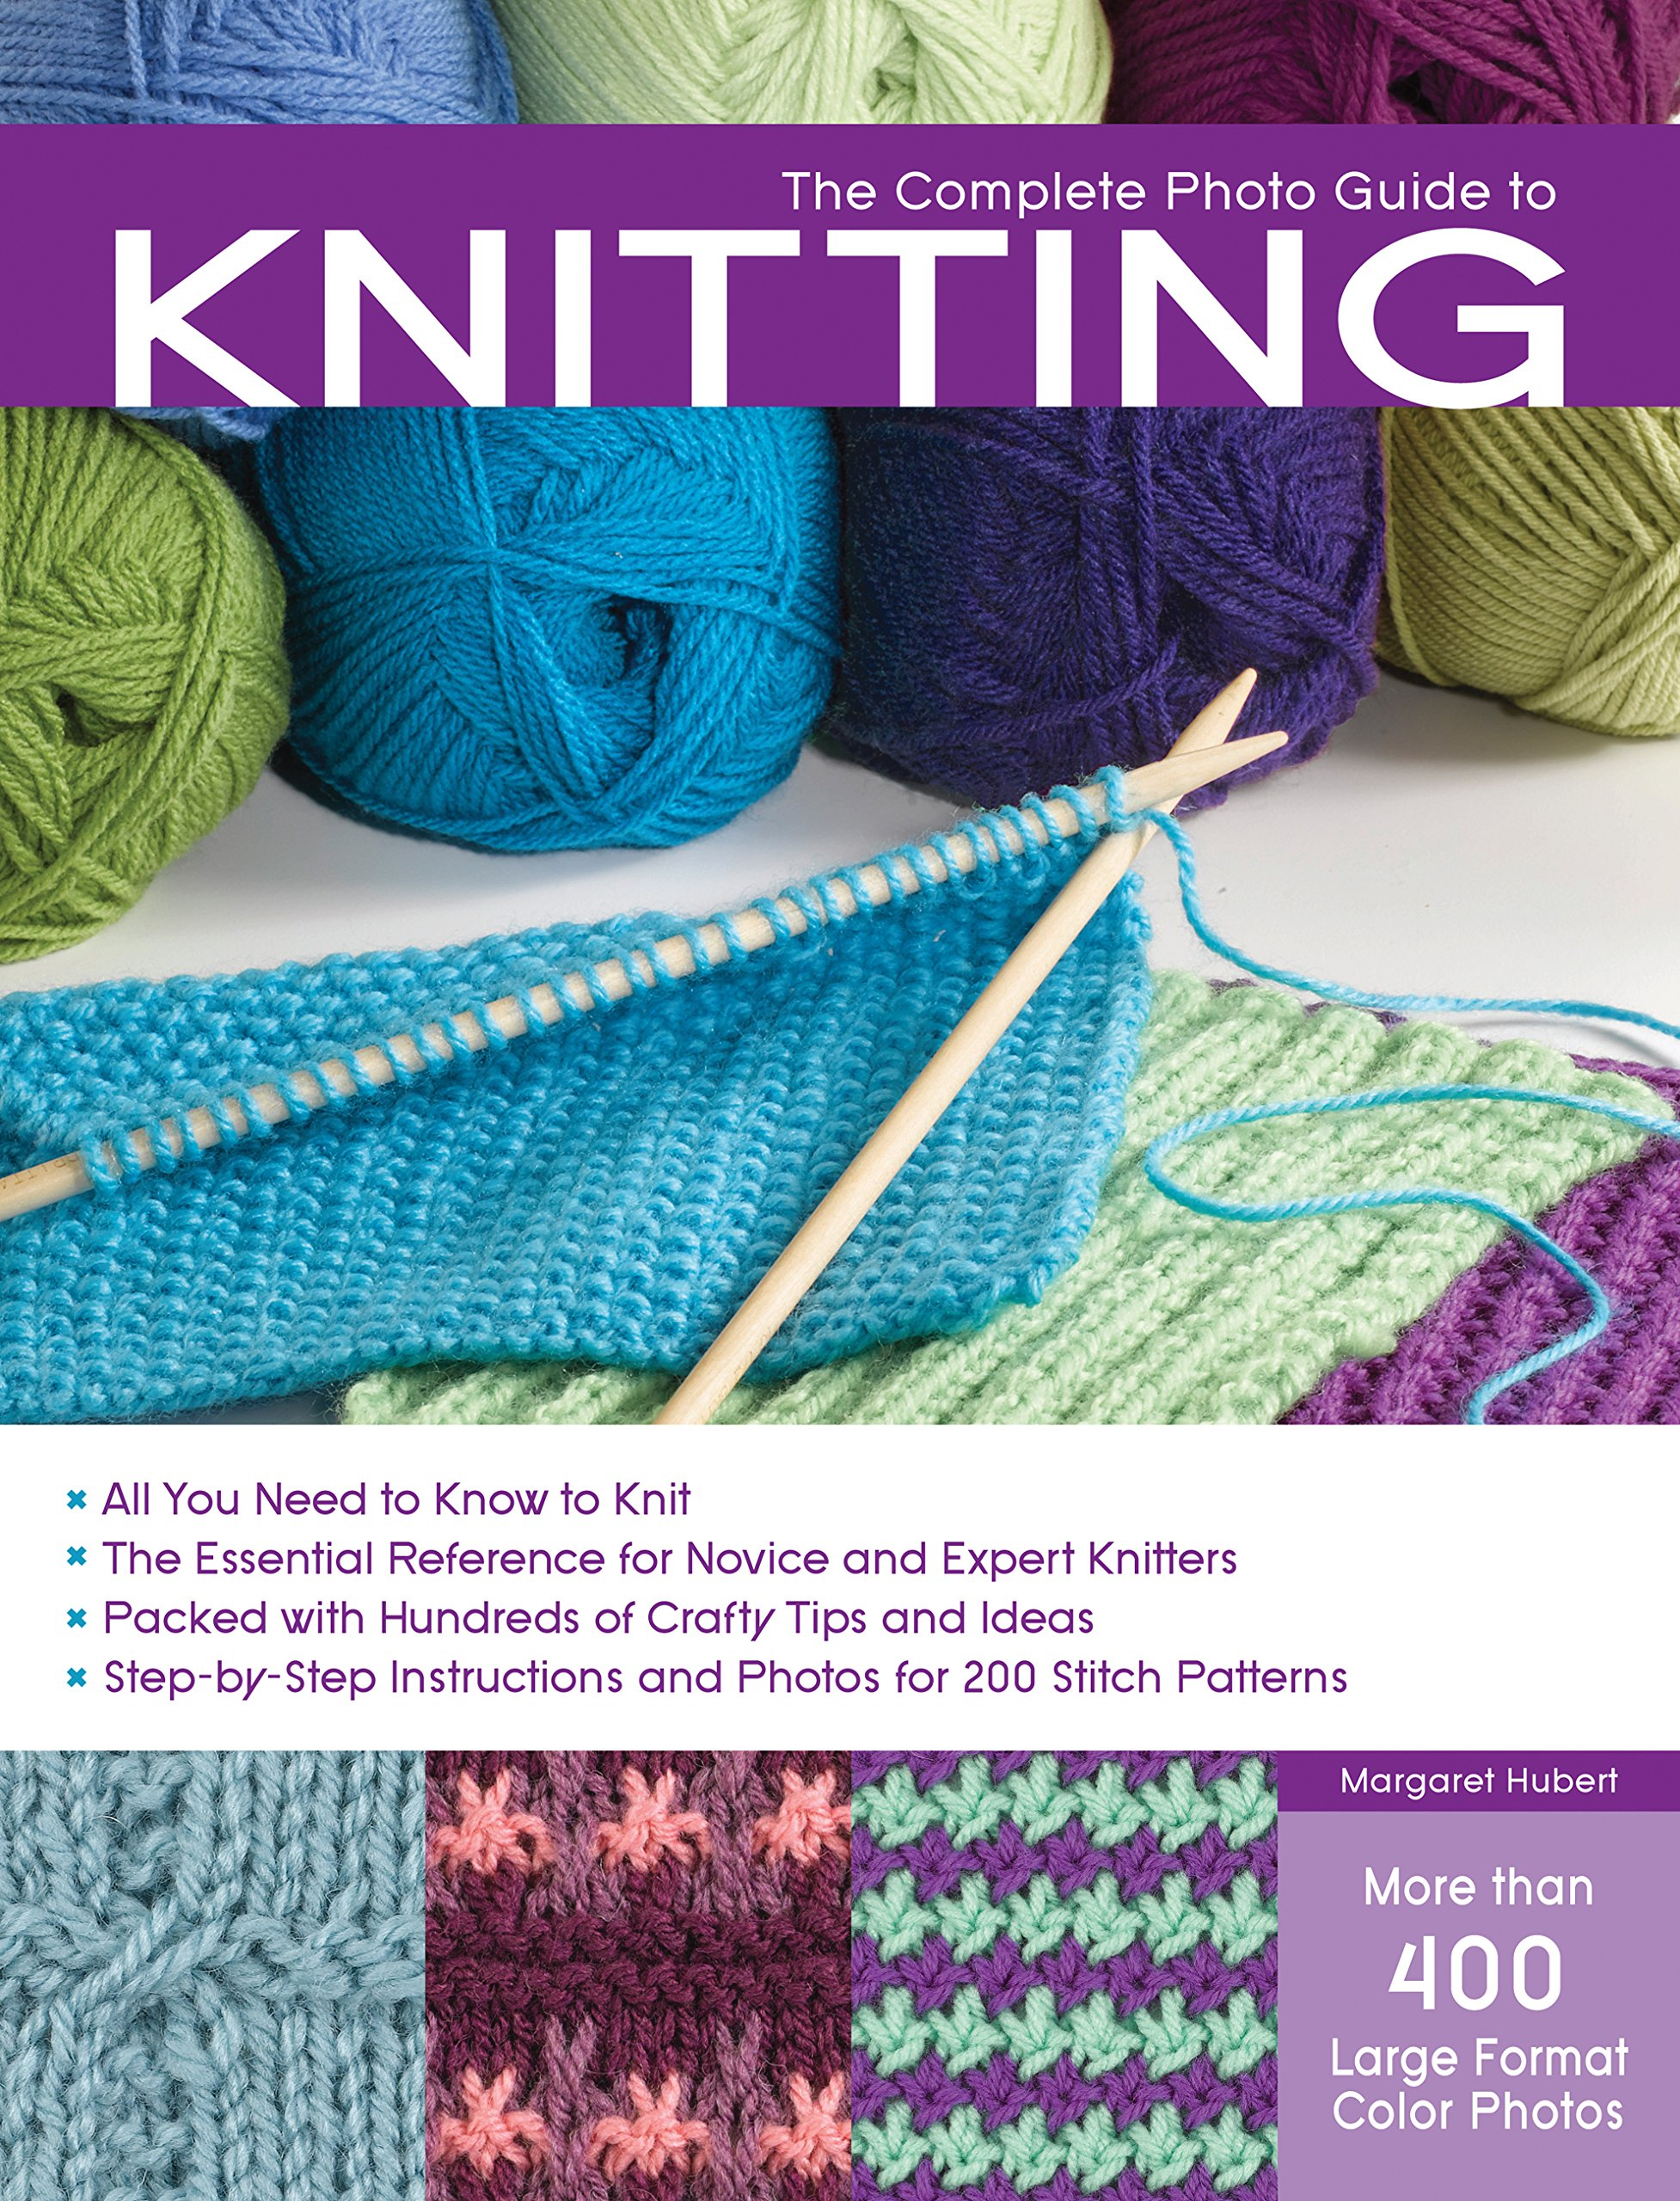 Pattern Peacocks tail with knitting needles: the diagram will explain how to tie it